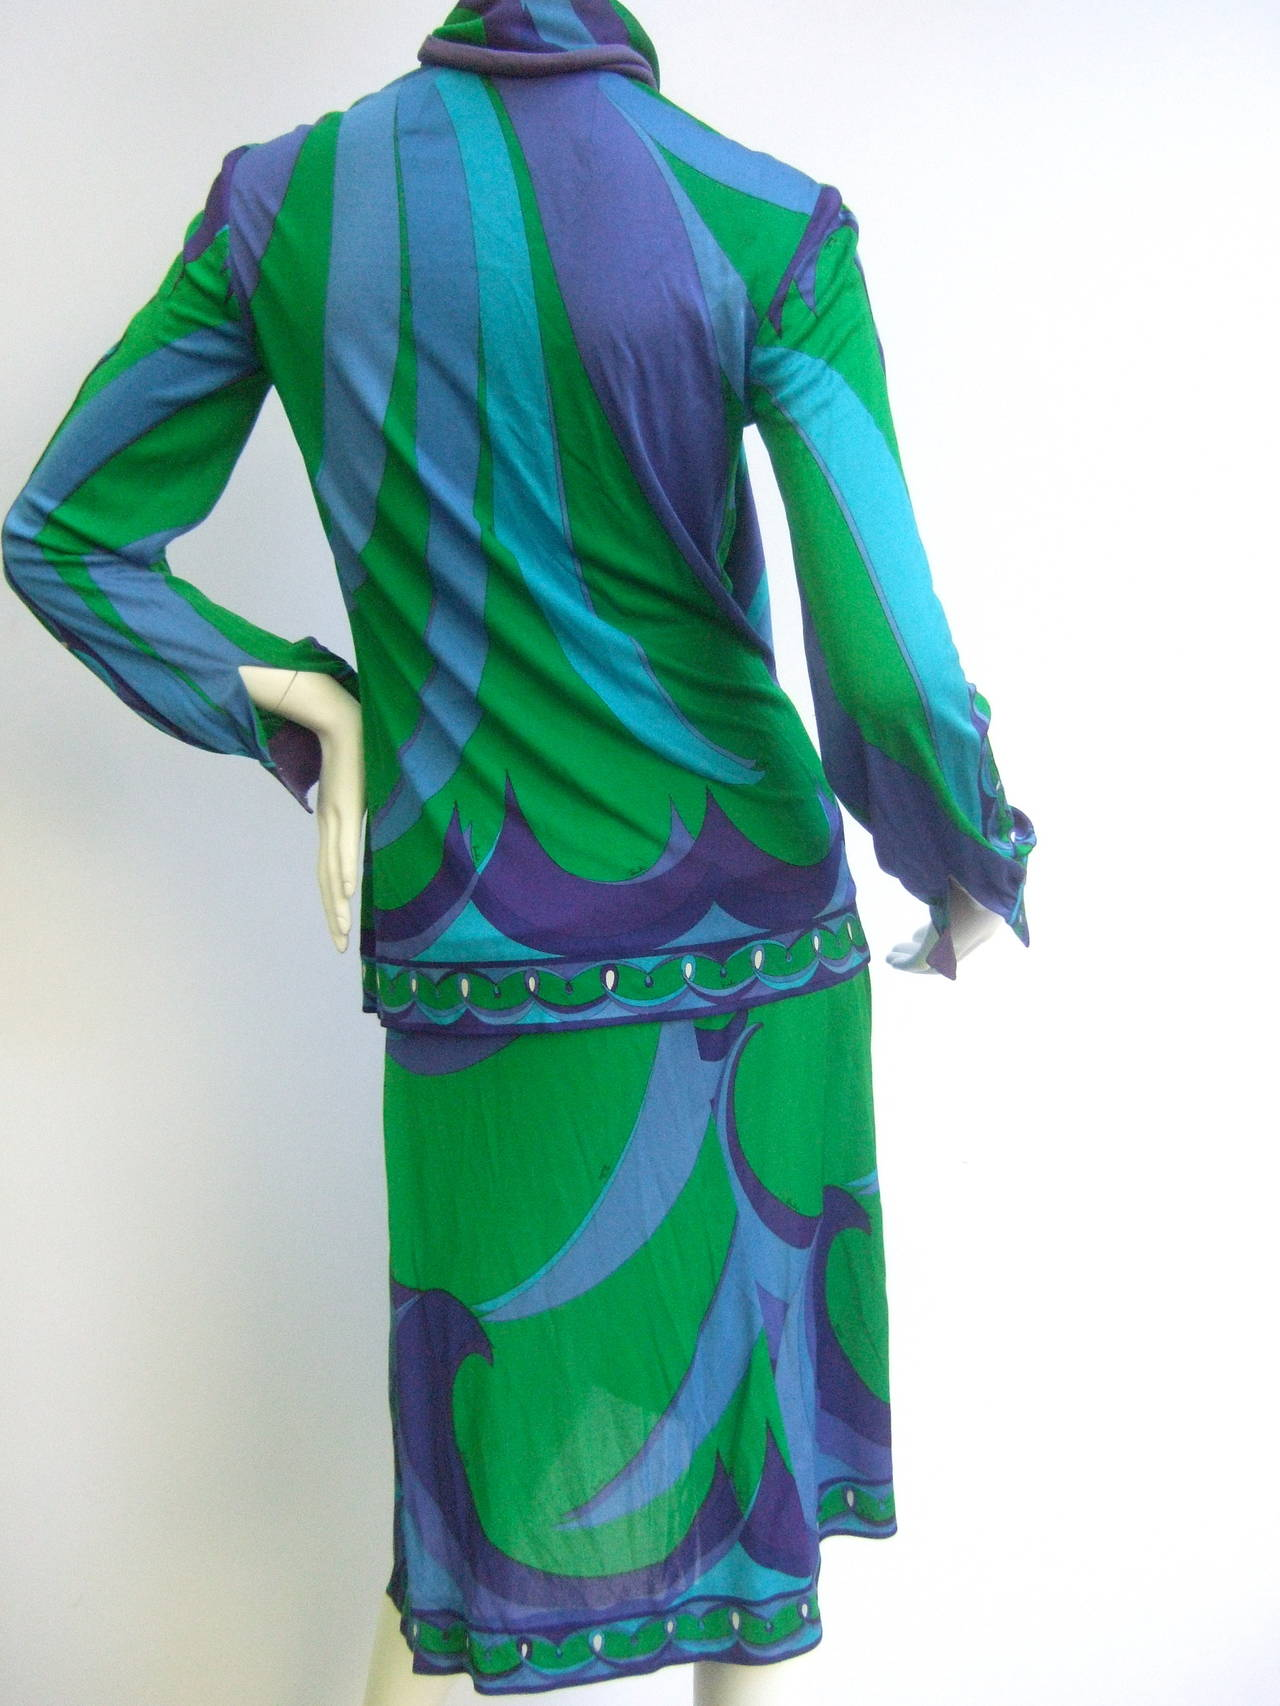 EMILIO PUCCI Silk Jersey Blend Blouse & Skirt Set c 1970 8